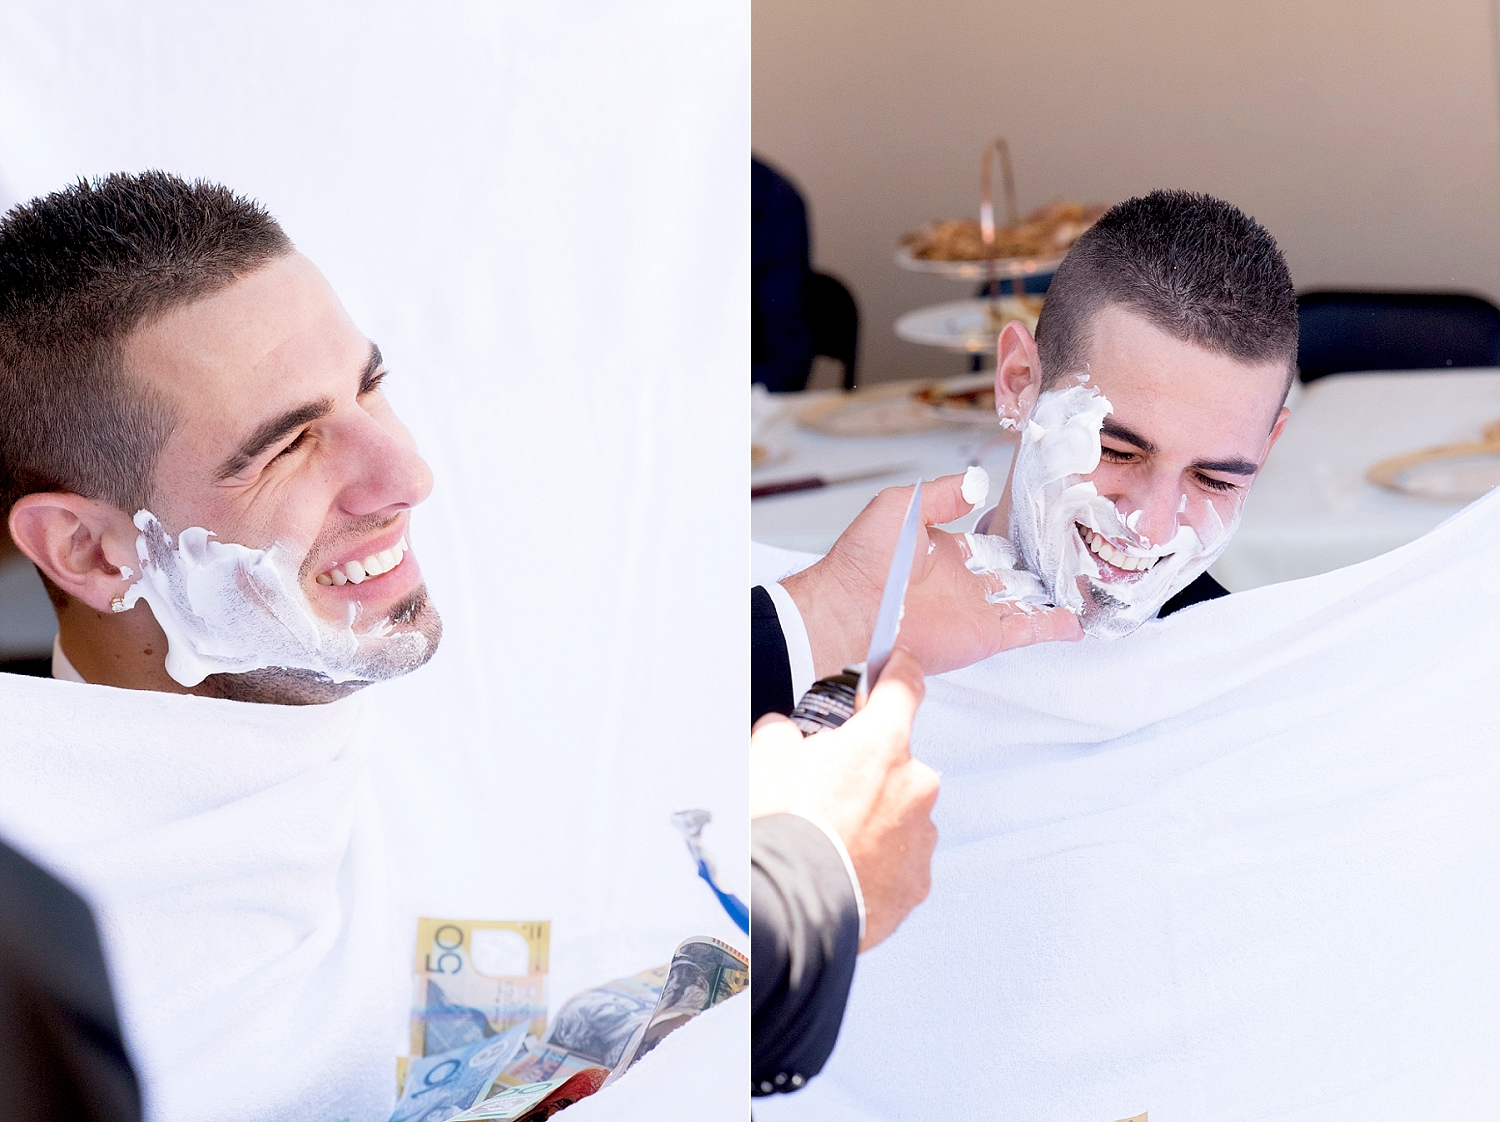 06 macedonian traditions shaving groom wedding perth deray simcoe.jpg